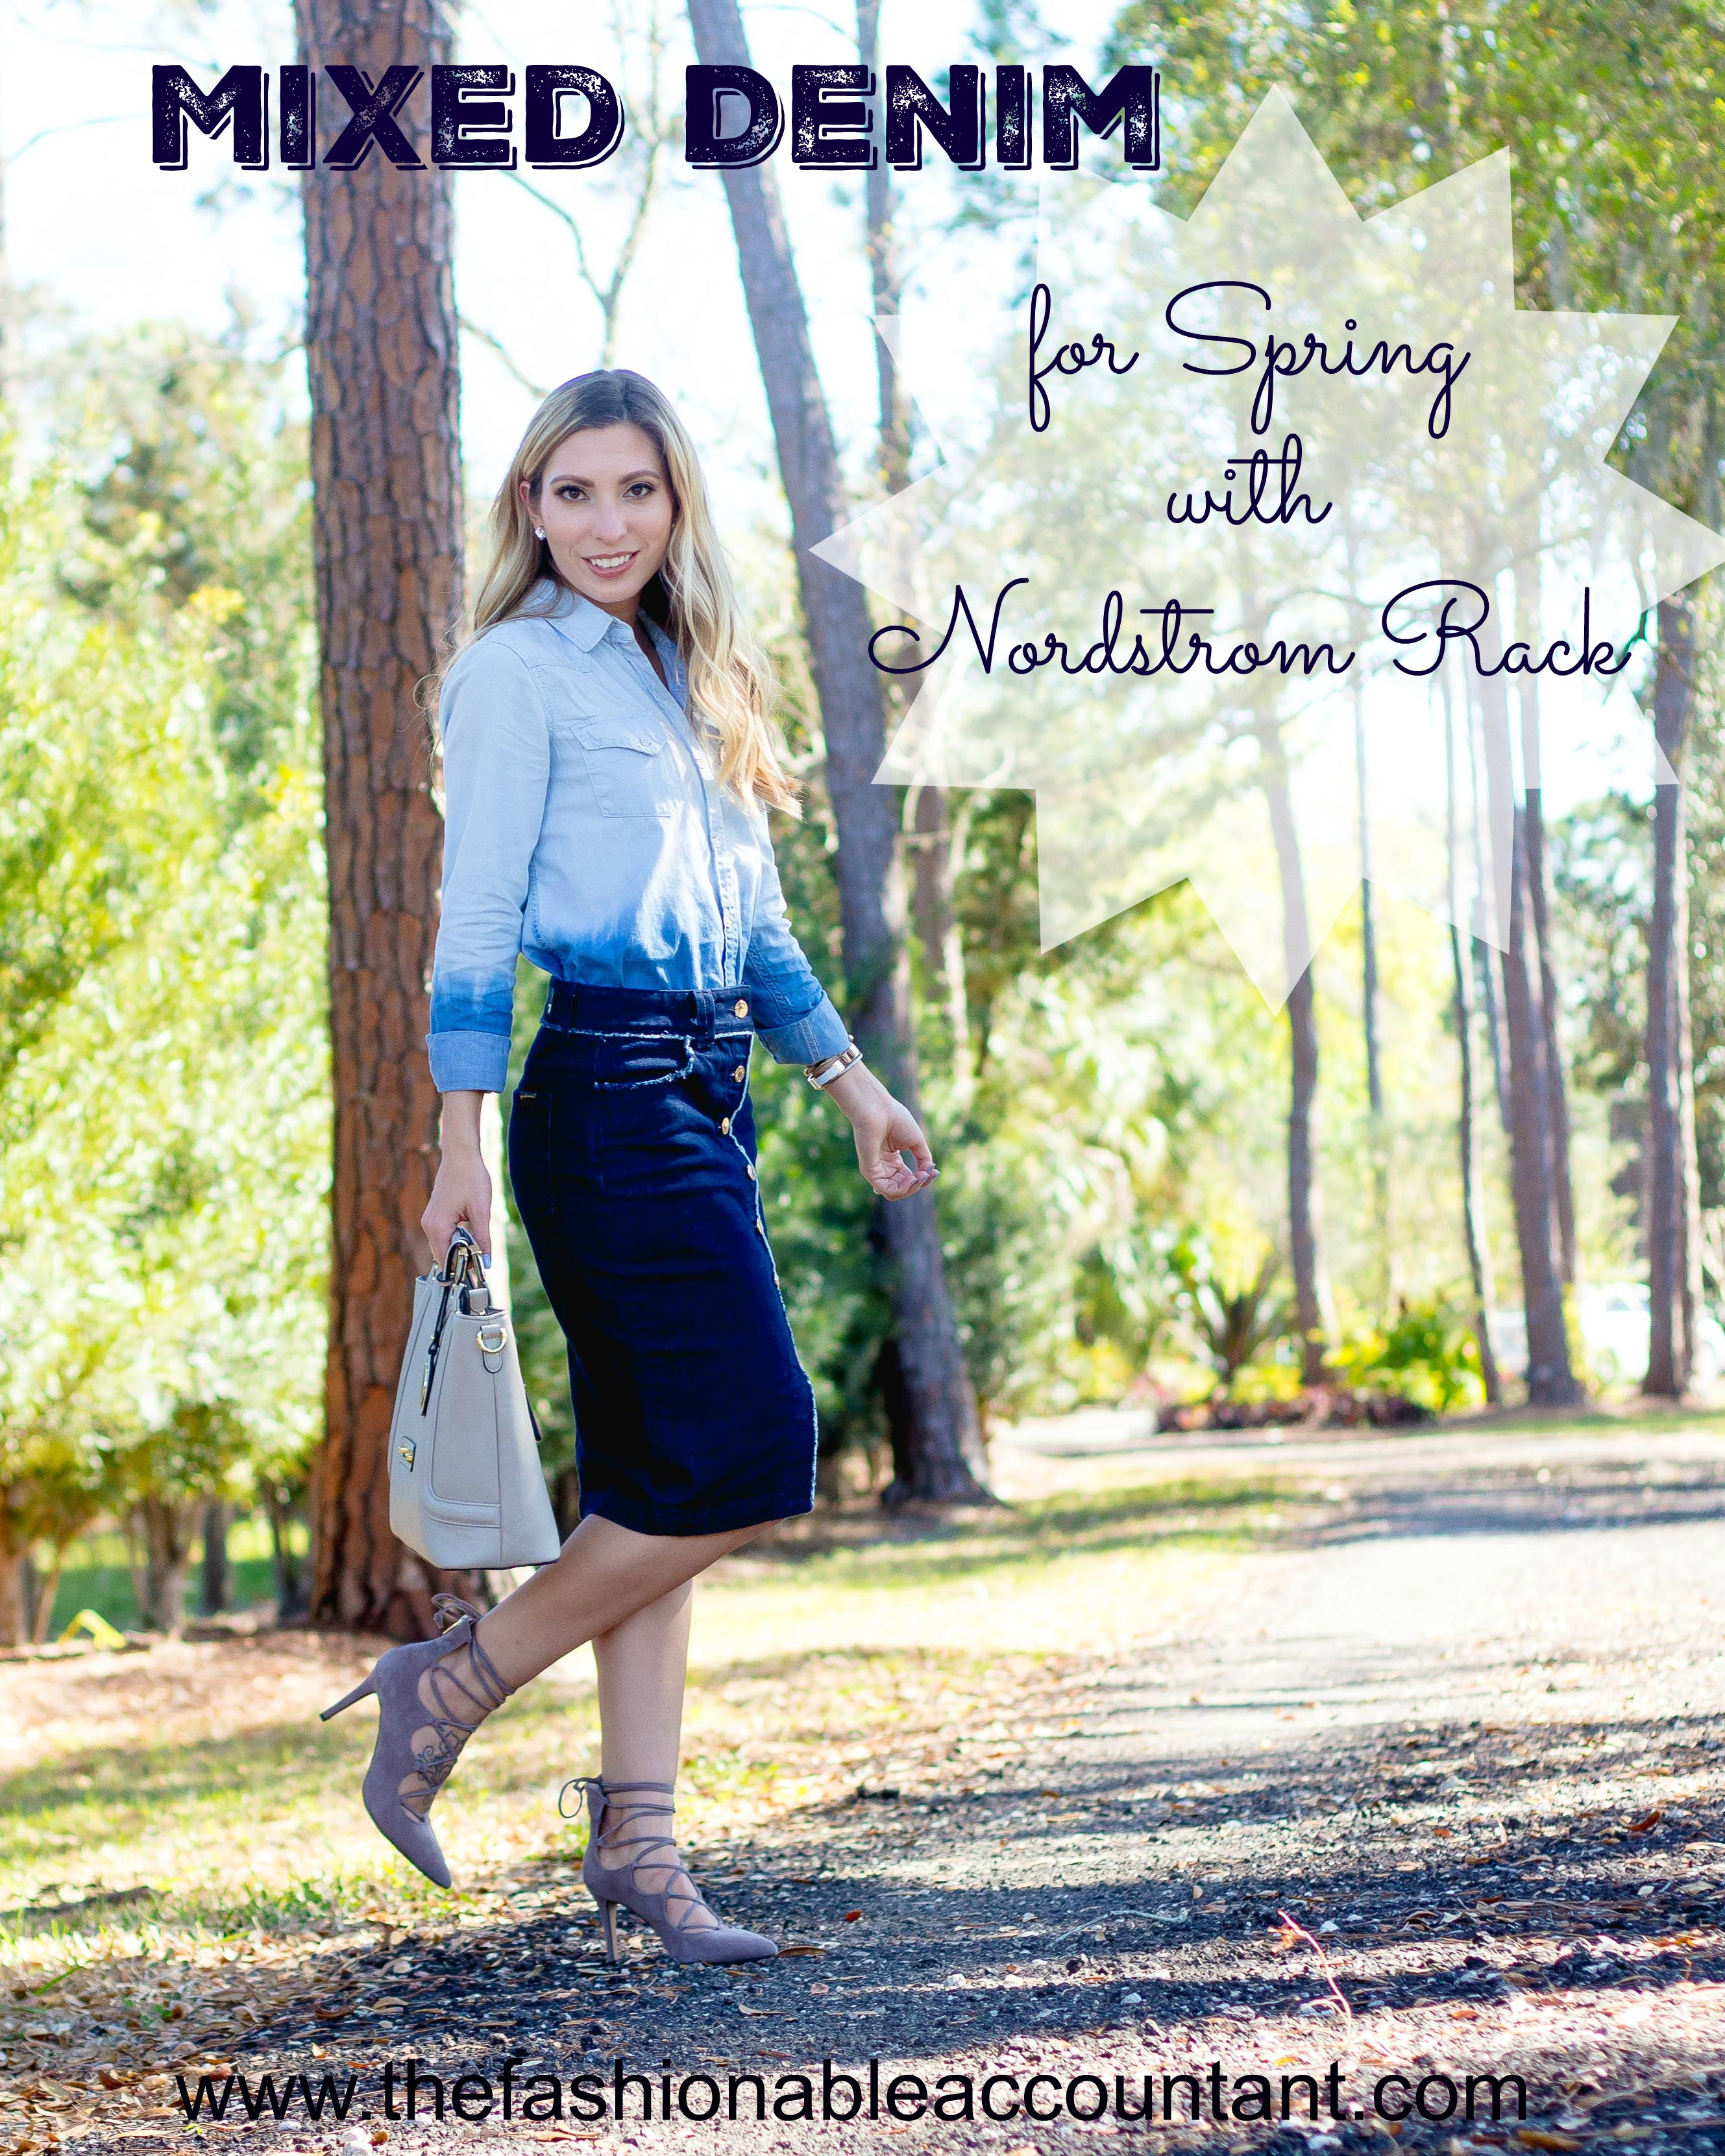 Mixed Denim for Spring with Nordstrom Rack